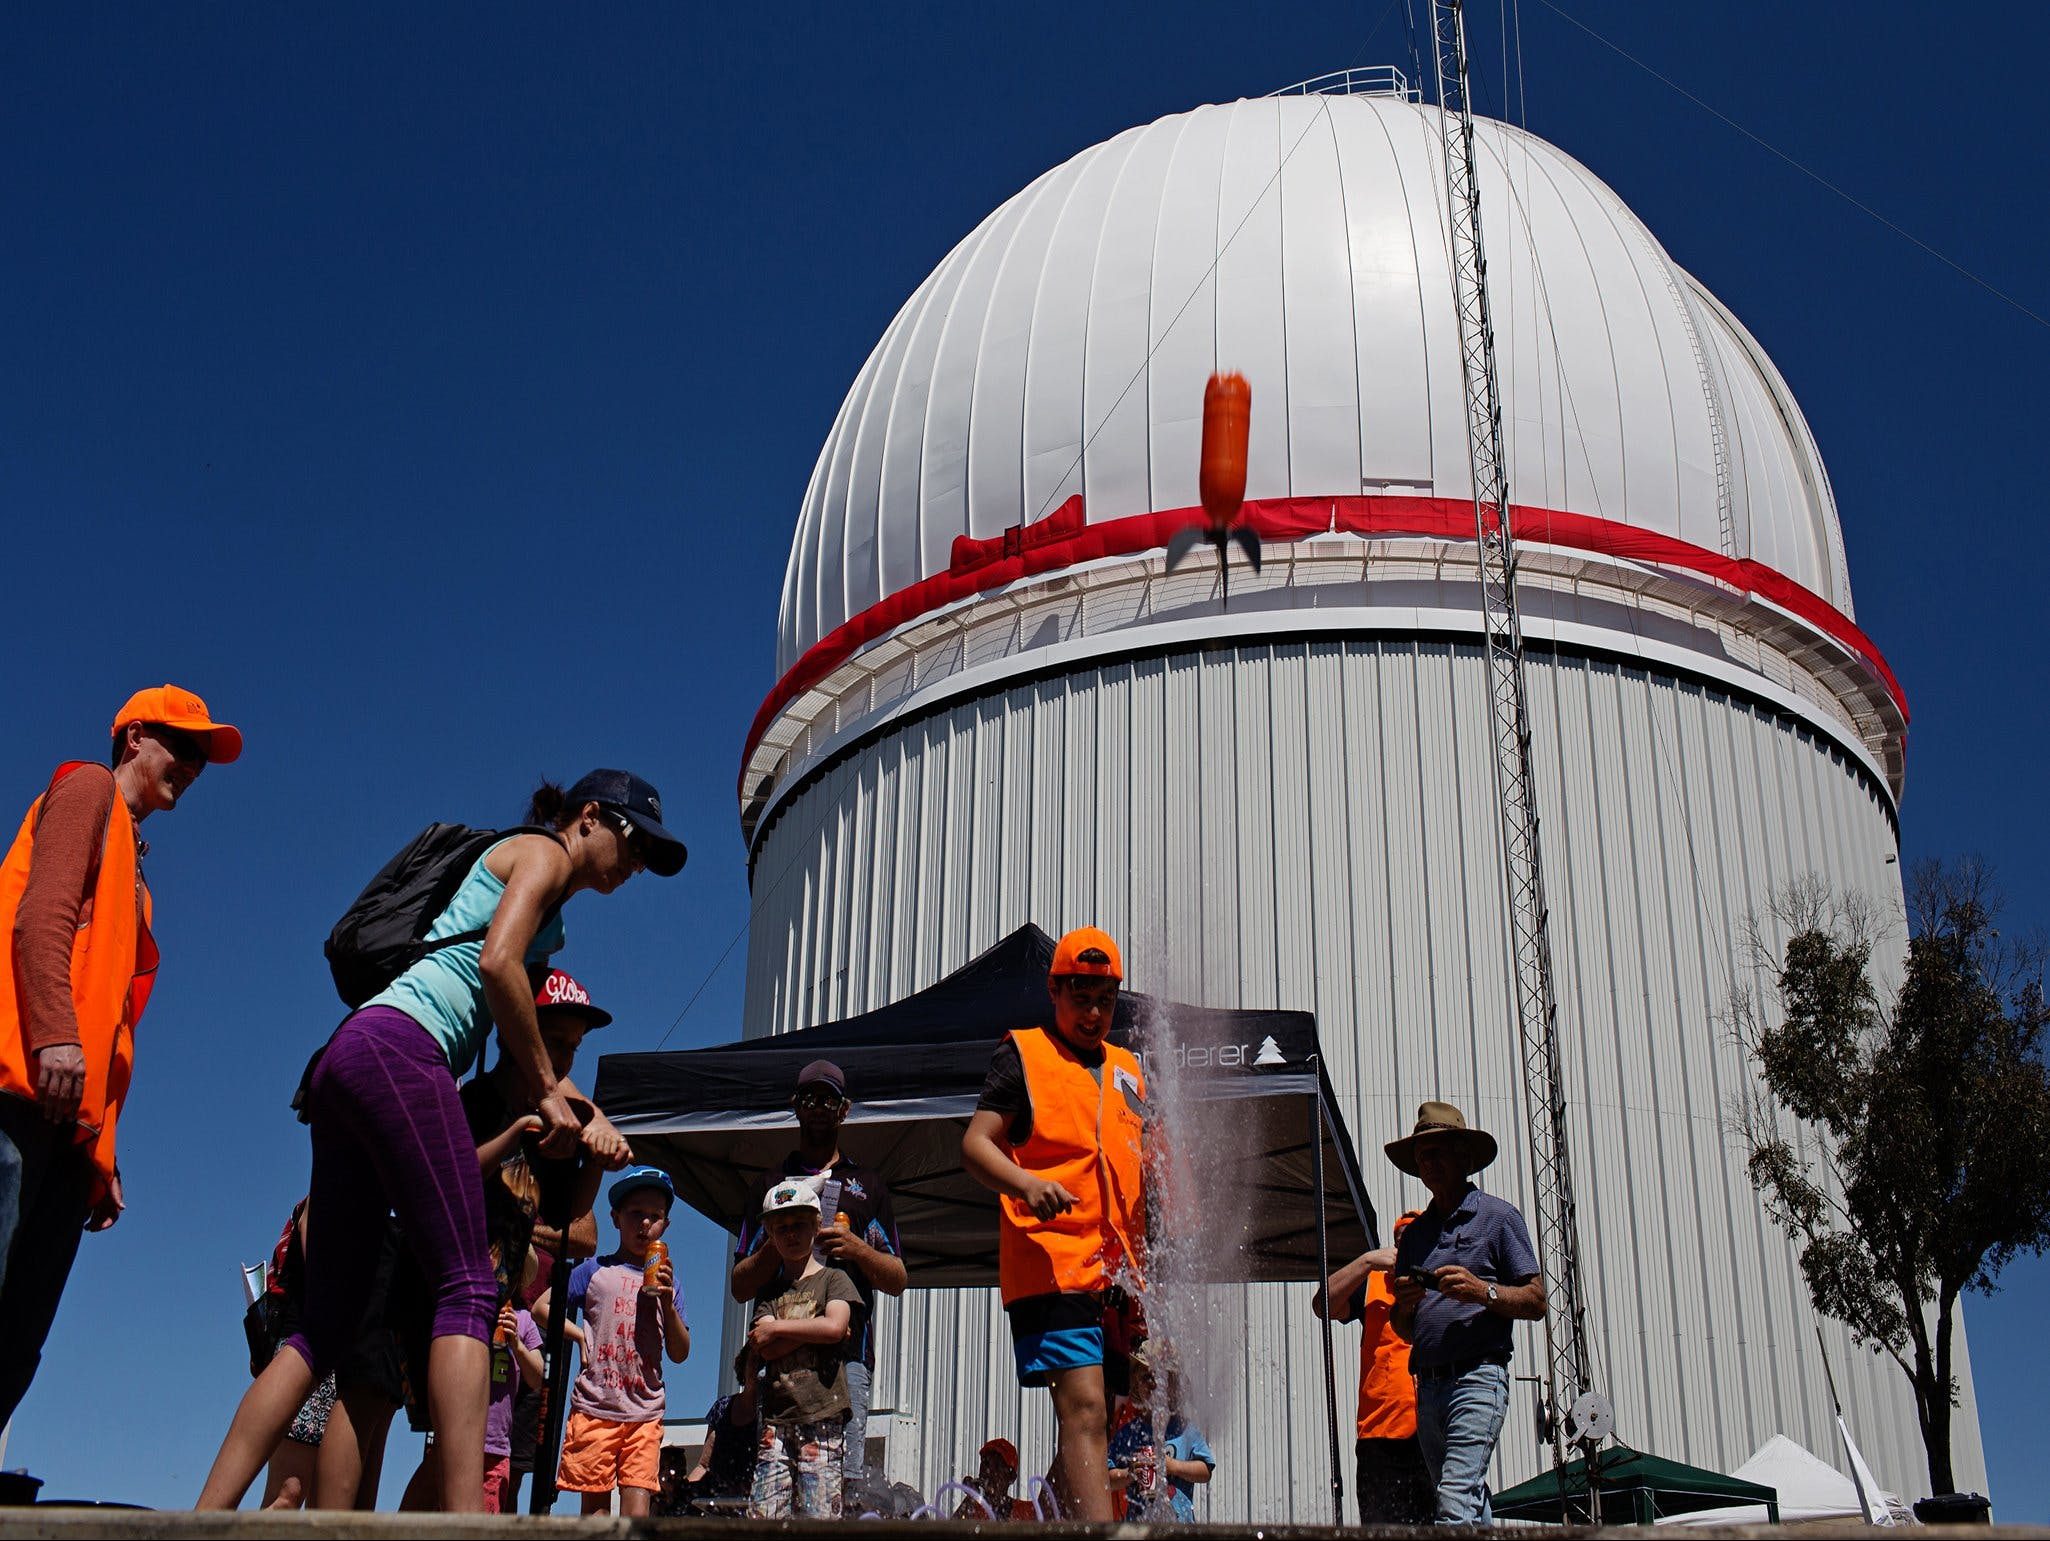 Siding Spring Observatory Open Day - Cancelled due to COVID 19 - Newcastle Accommodation